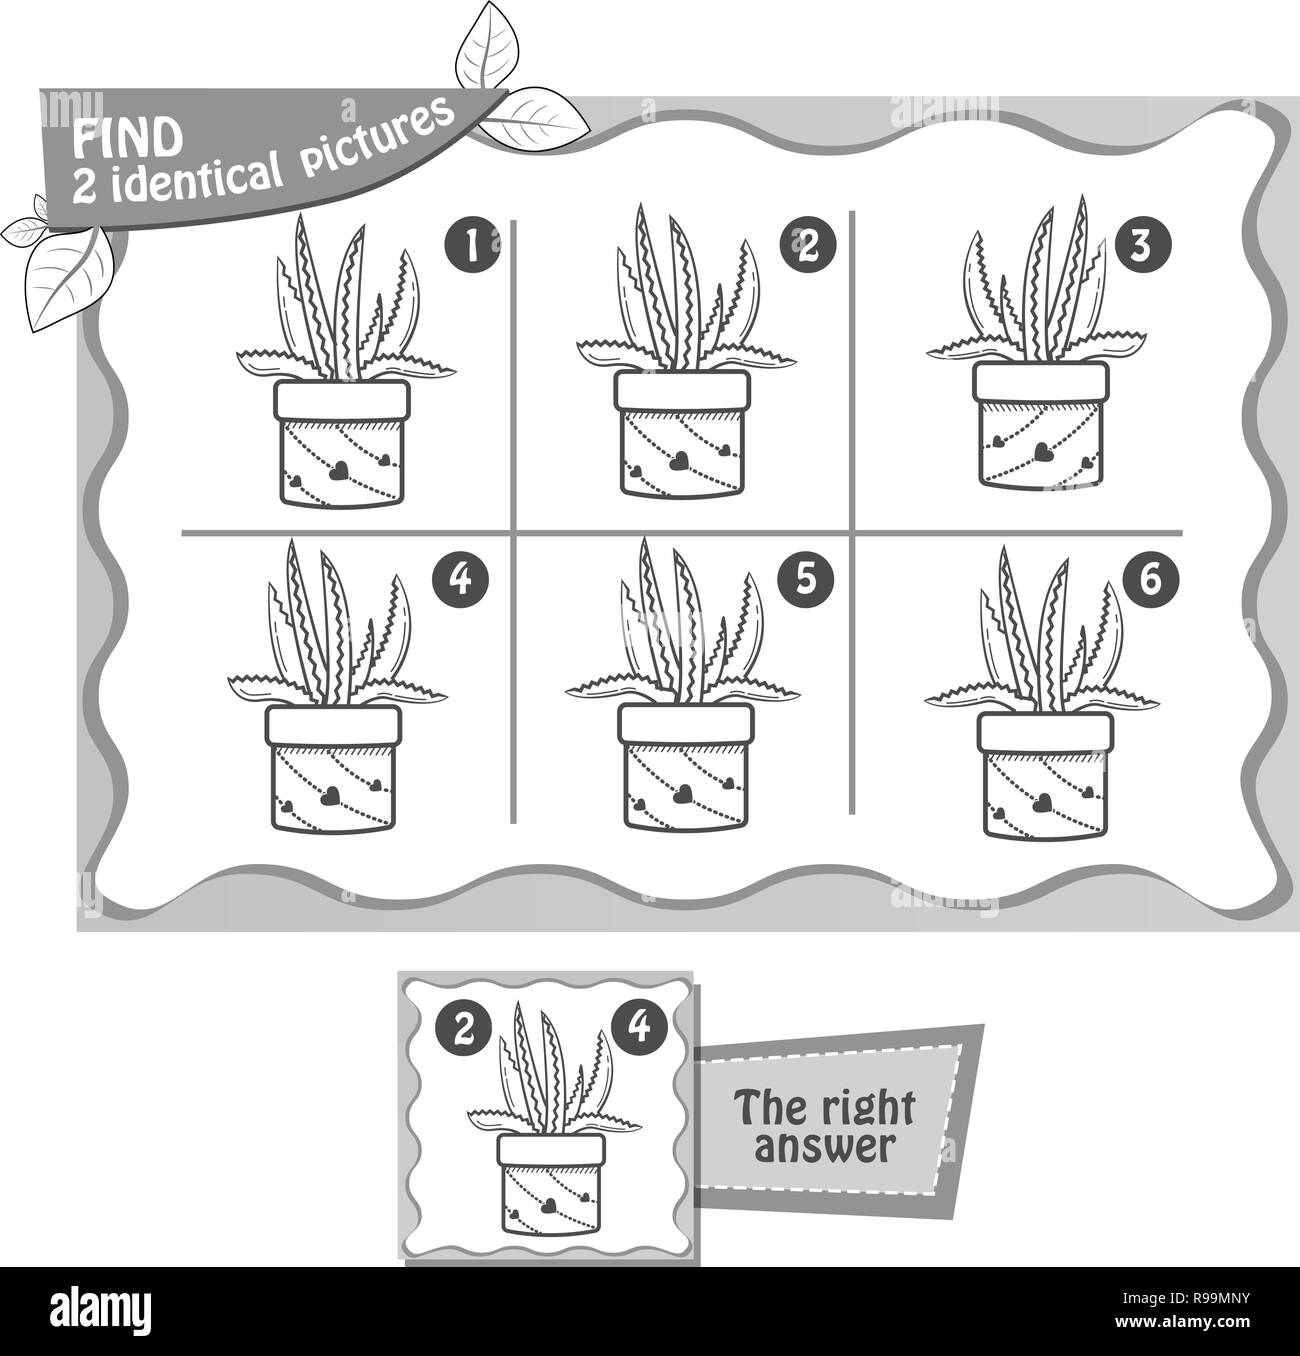 visual game for children and adults. Task  game fnd 2 identical  pictures. black and white illustration - Stock Vector